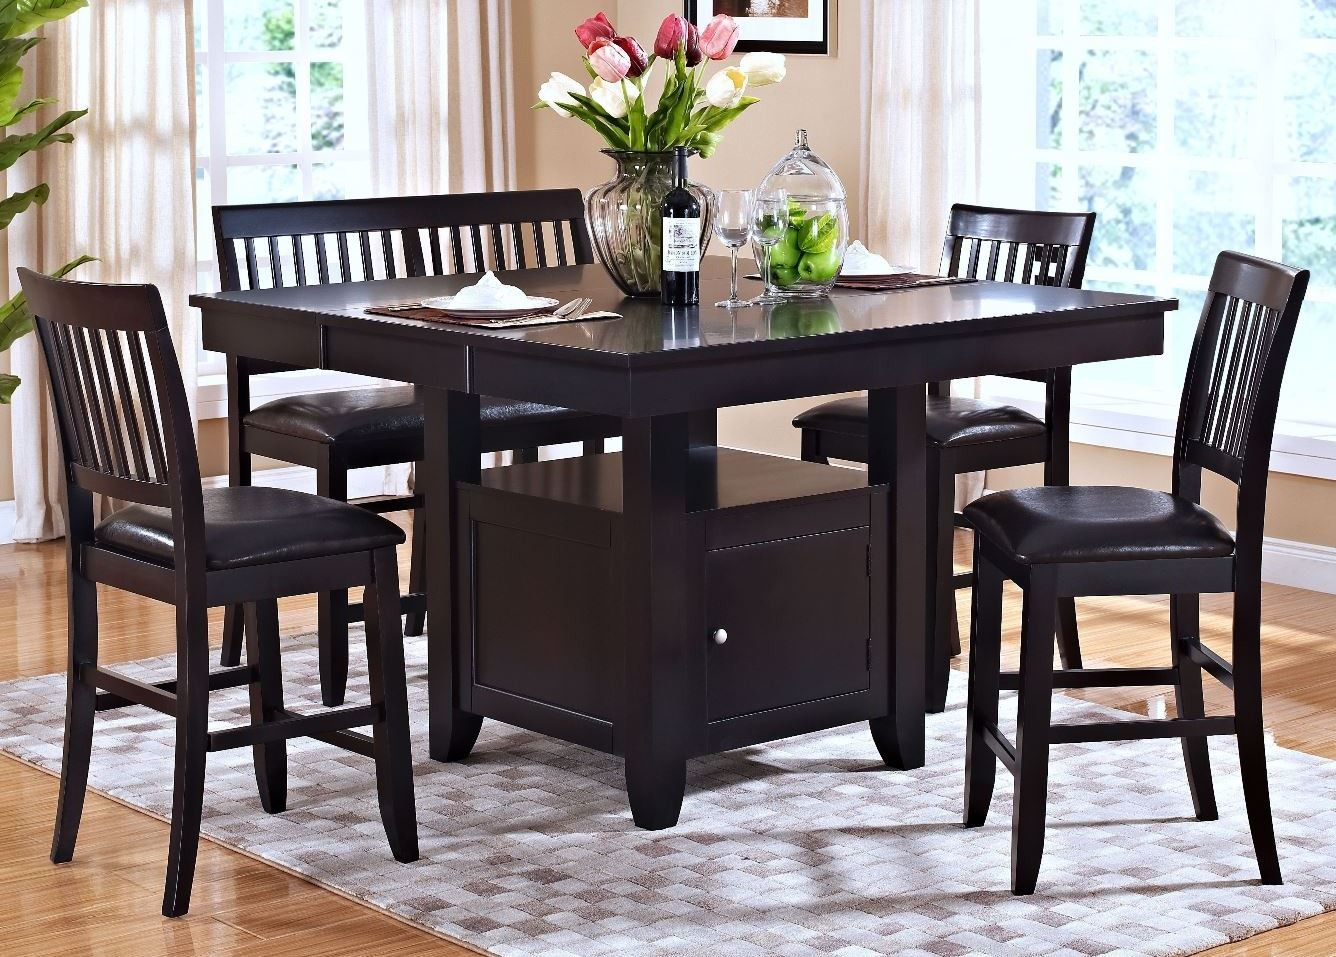 Kaylee espresso counter height storage dining room set from new classics 45 102 10 10b - Dining room sets with storage ...